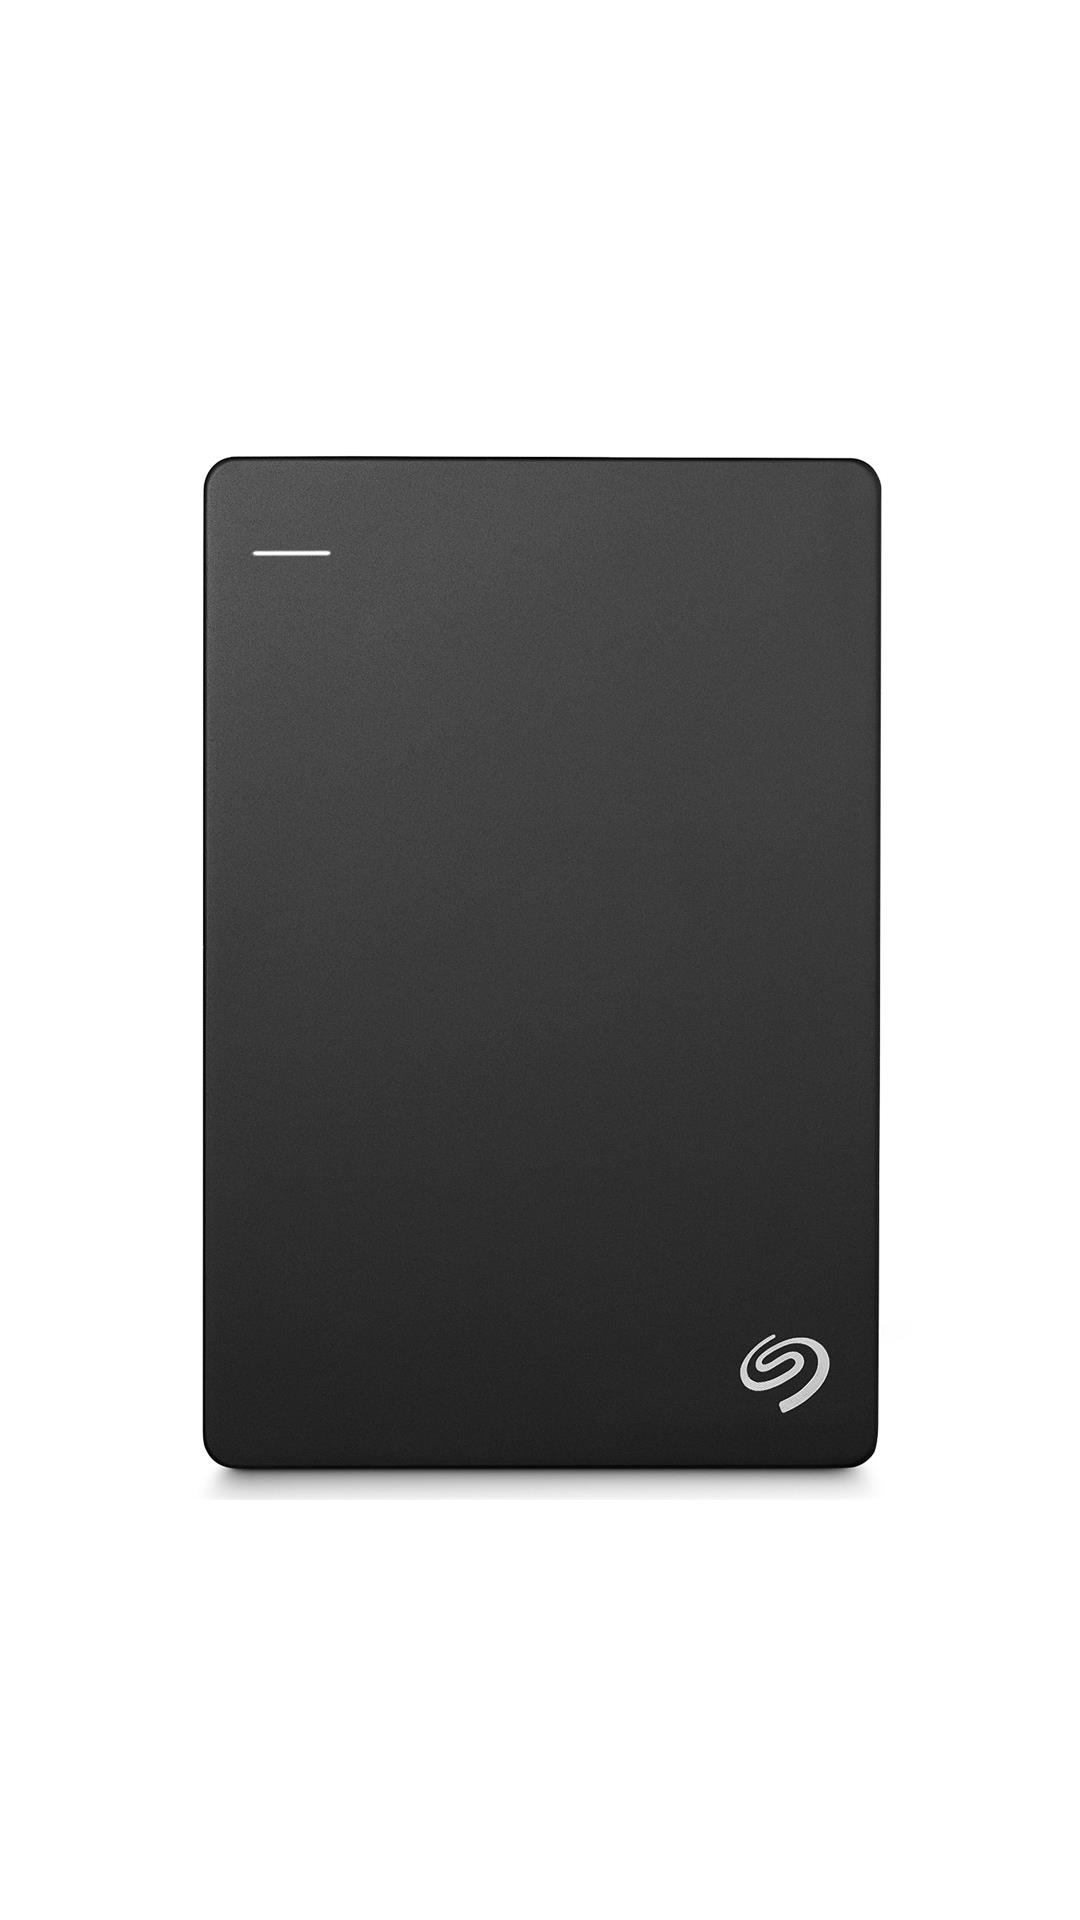 Seagate Backup Plus 2 TB Portable External Hard Disk (Black) With 200 GB of Cloud Storage & Mobile Device Backup